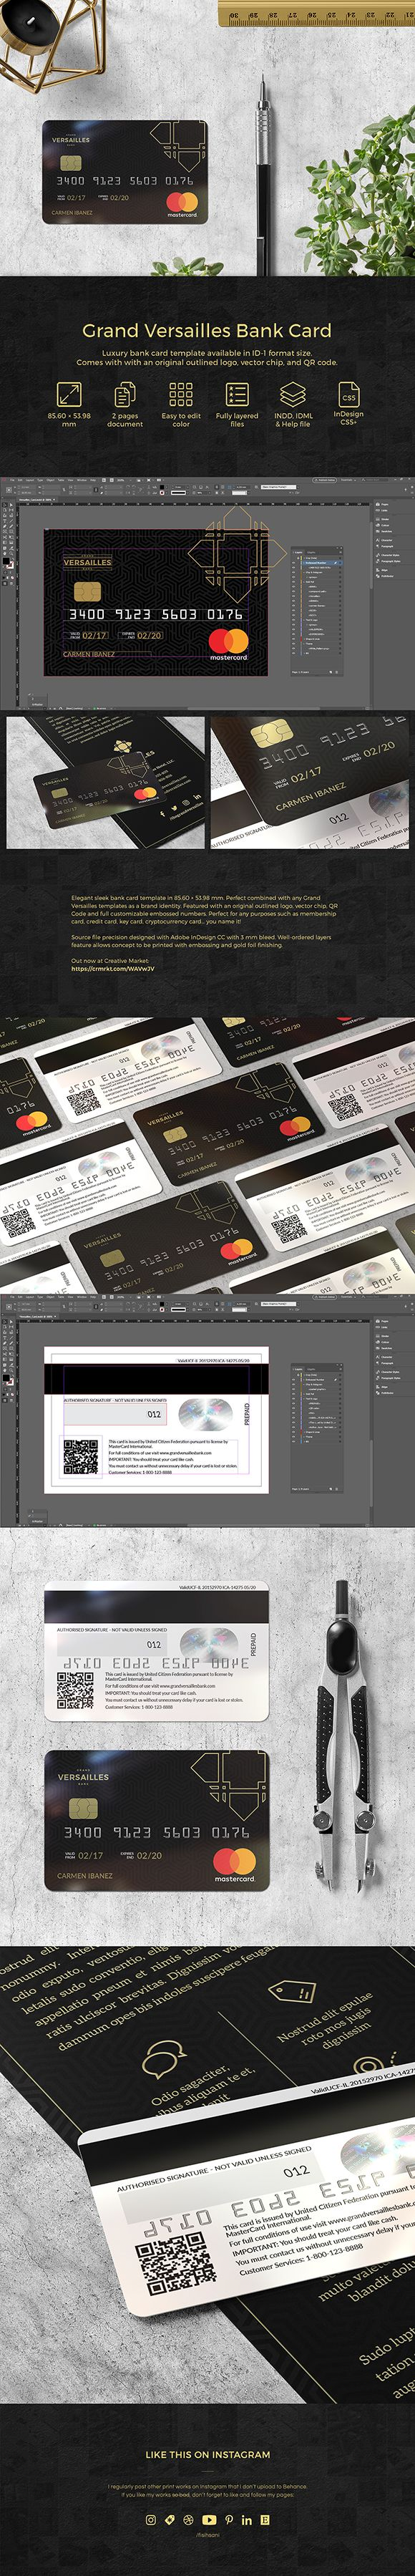 This is a first card template in my shop, Grand Versailles Bank Card. Instruction and user guide included in the help file. Perfect for any purposes such as membership card, credit card, key card, cryptocurrency card... you name it! ($7). #ad #adobeindesign #bank #bankcard #black #branding #card #creditcard #cryptocurrency #cryptocurrencycard #debitcard #design #elegant #gold #graphicdesign #identity #indesign #luxury #membership #prepaidcard #print #printdesign #printemplate #template